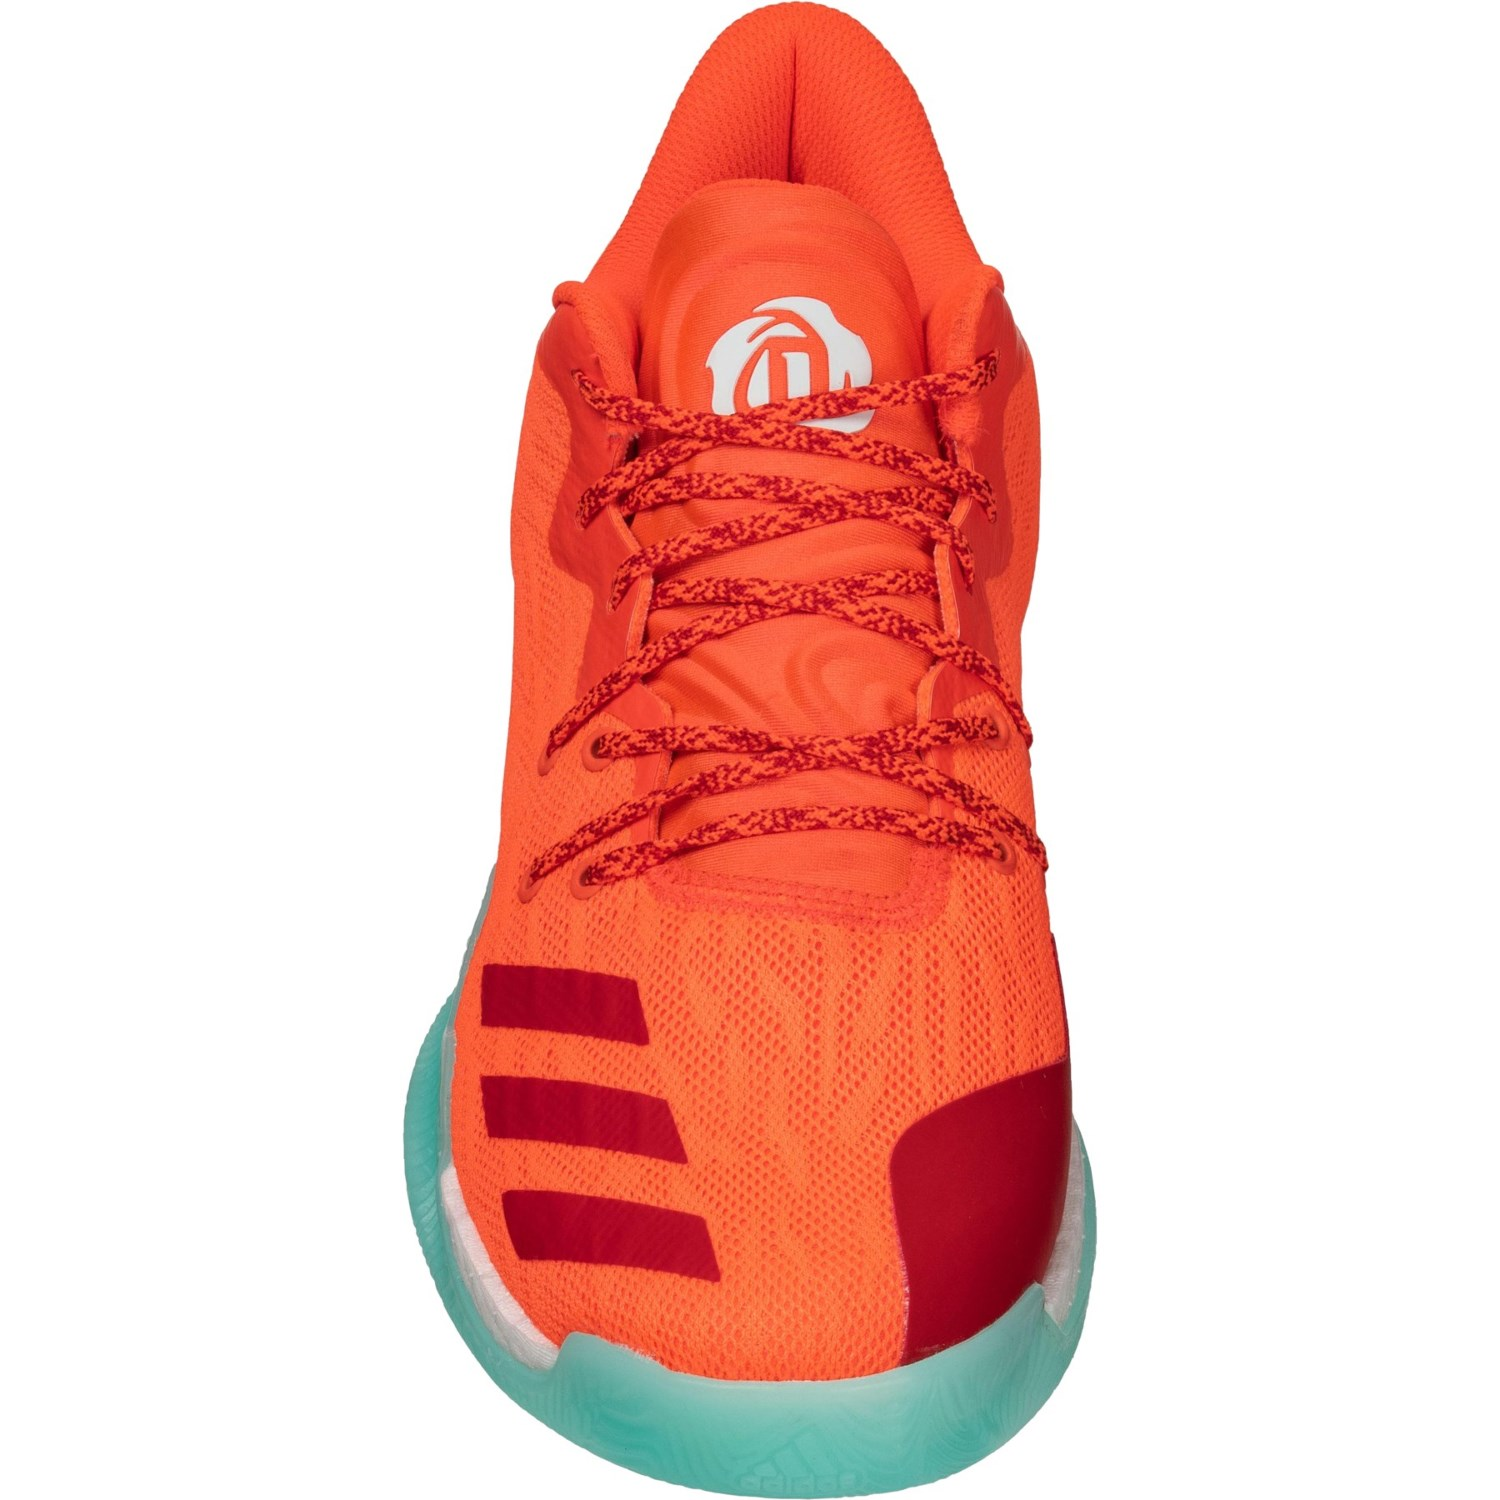 a5167d396a75 adidas D Rose 7 Low Basketball Shoes (For Men) - Save 48%